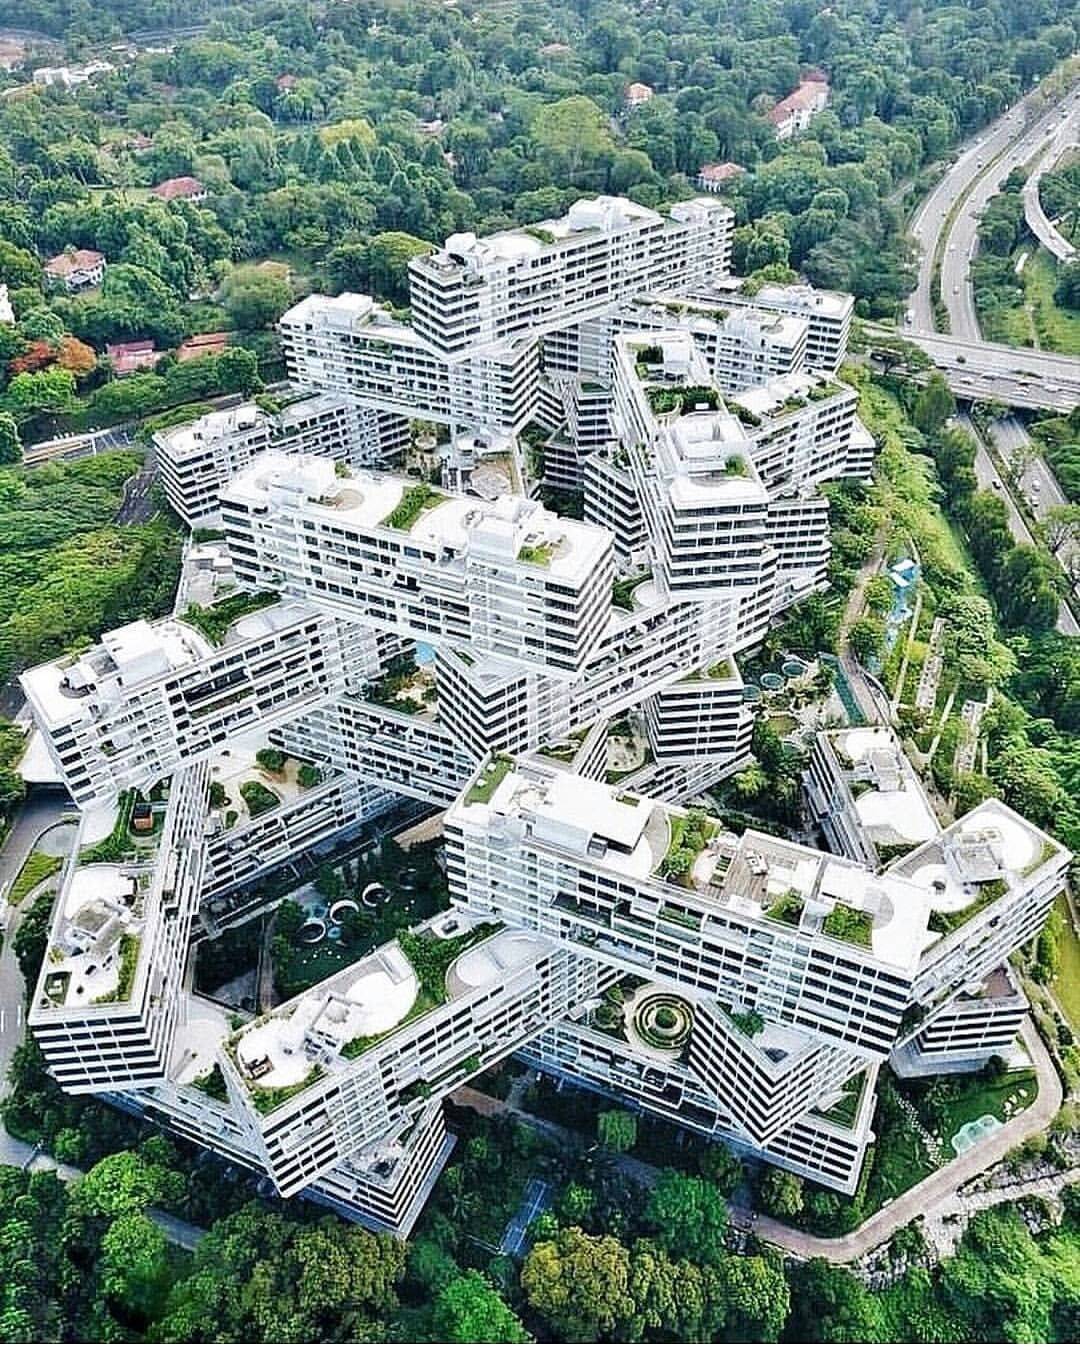 Apartments In Singapore: ArchitecturenowThe Interlace Is A 1000-unit Apartment